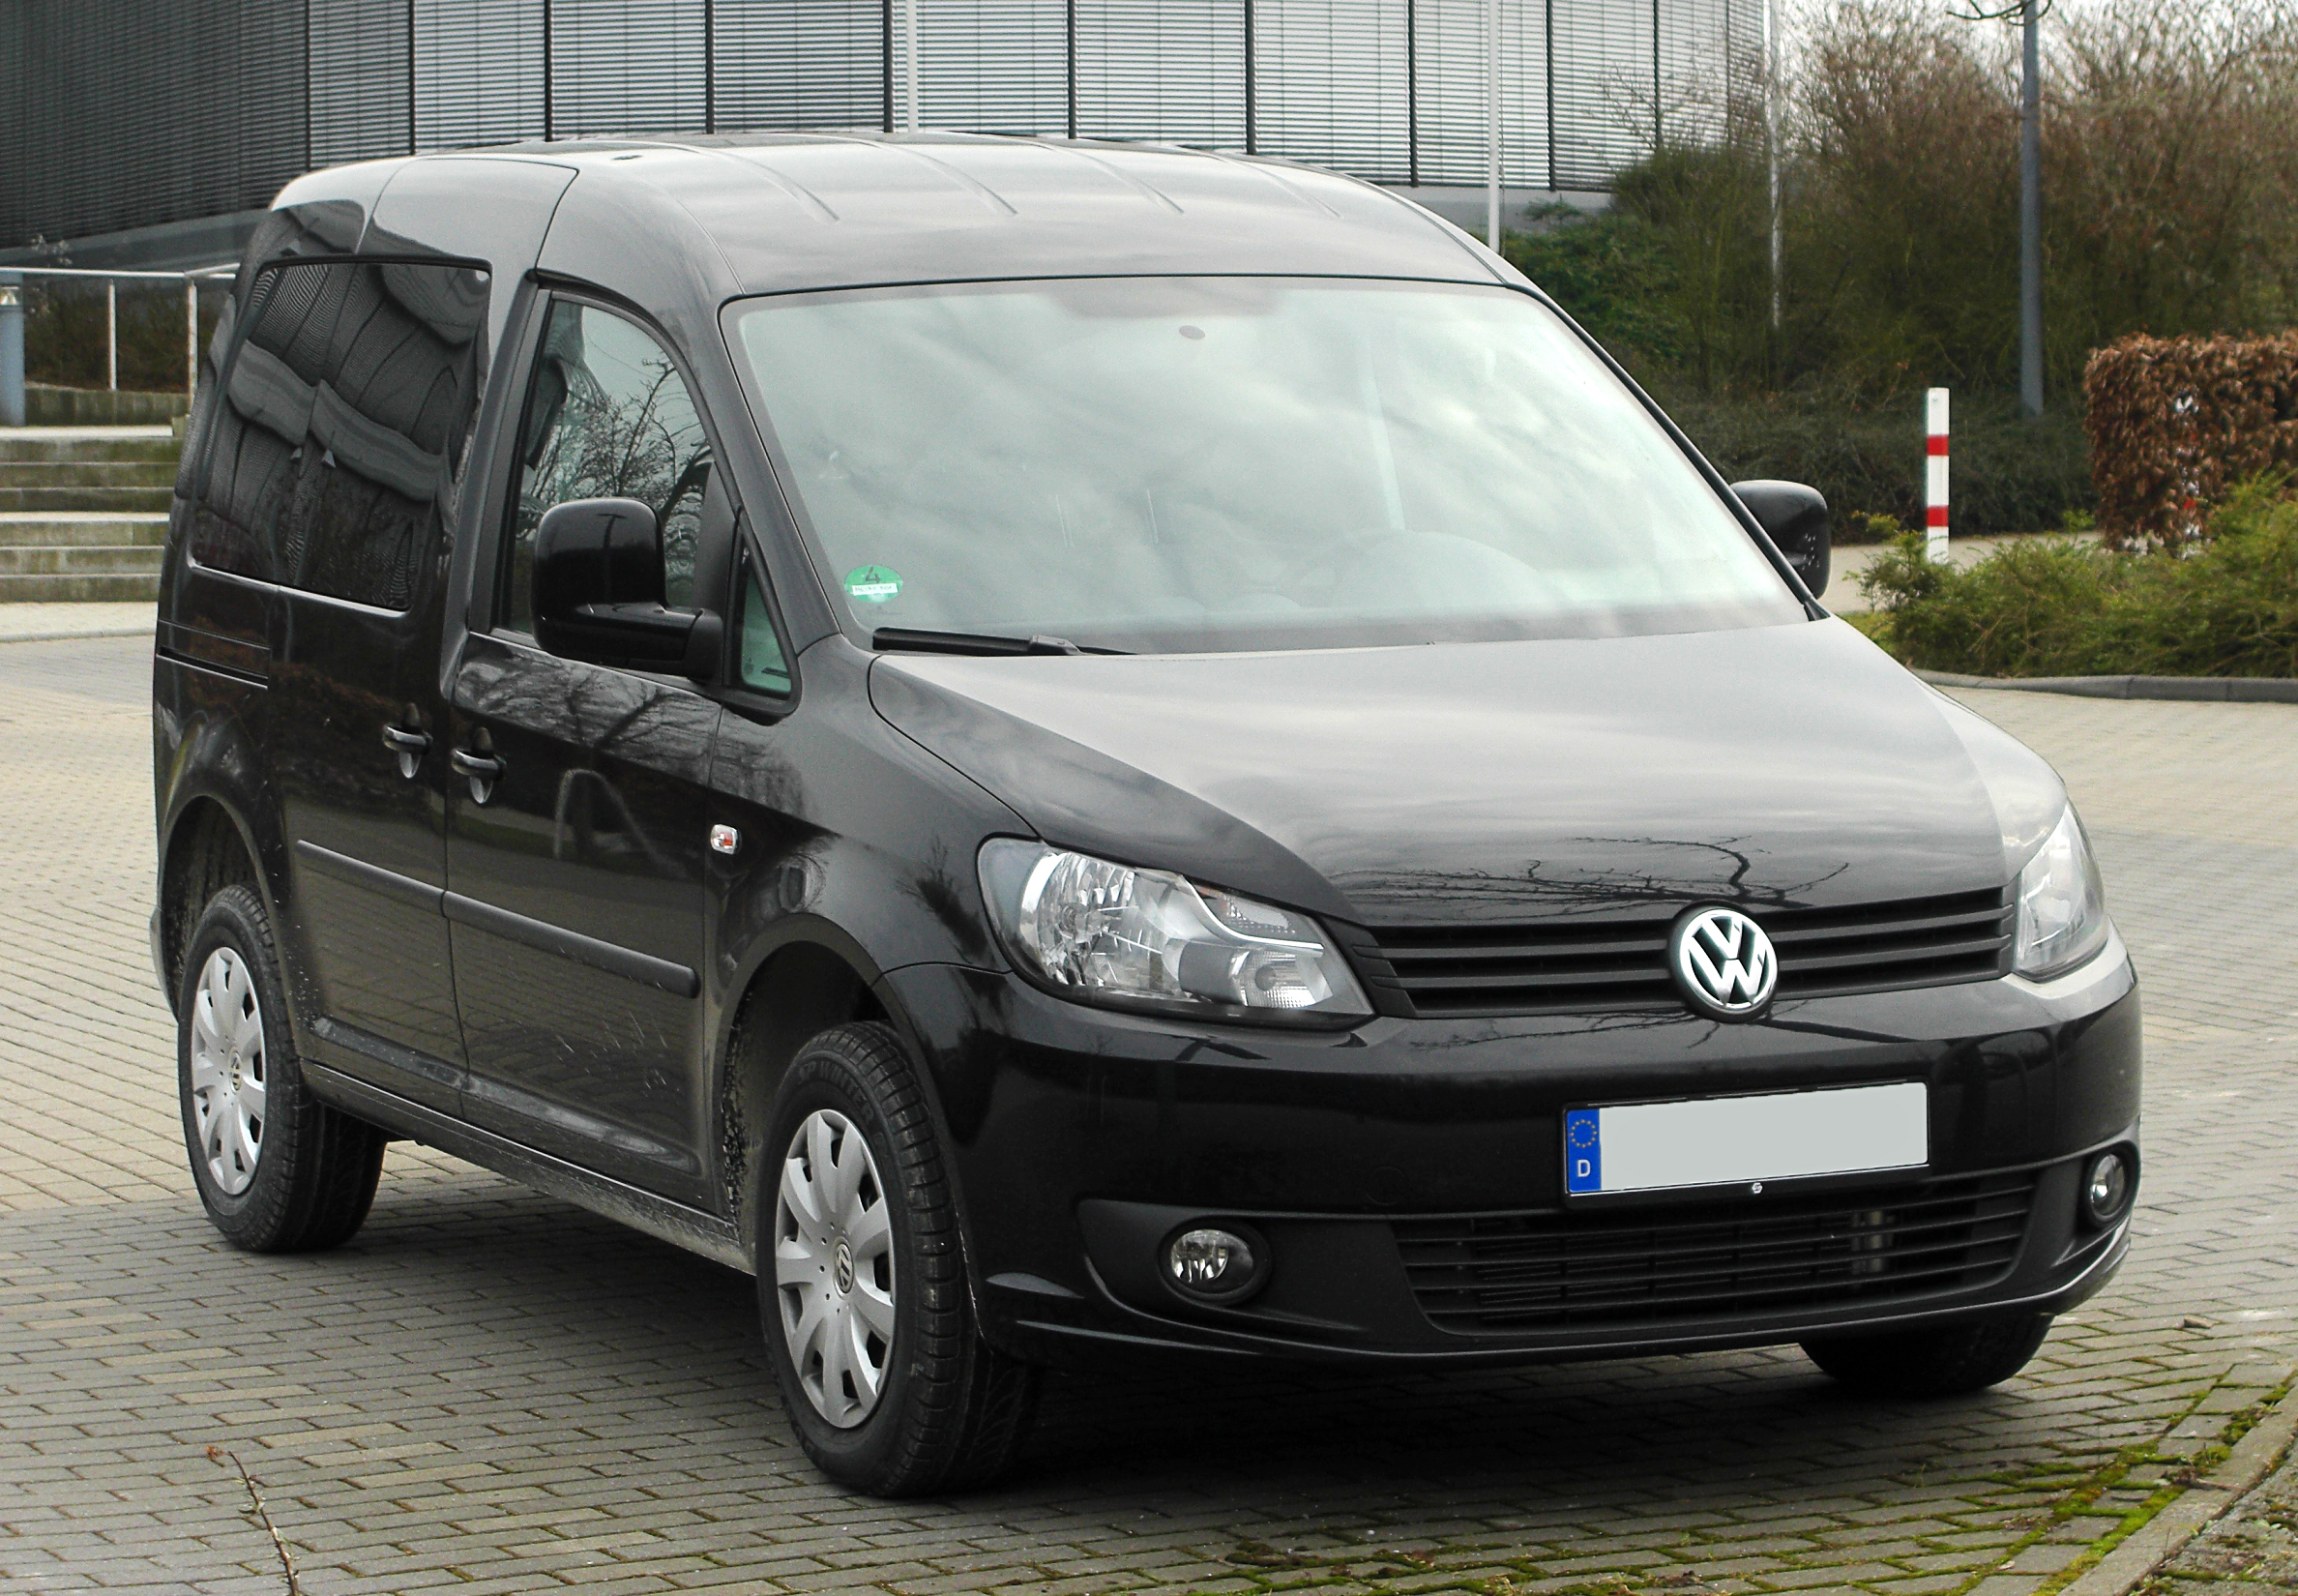 Volkswagen Caddy 1.6 2011 photo - 3